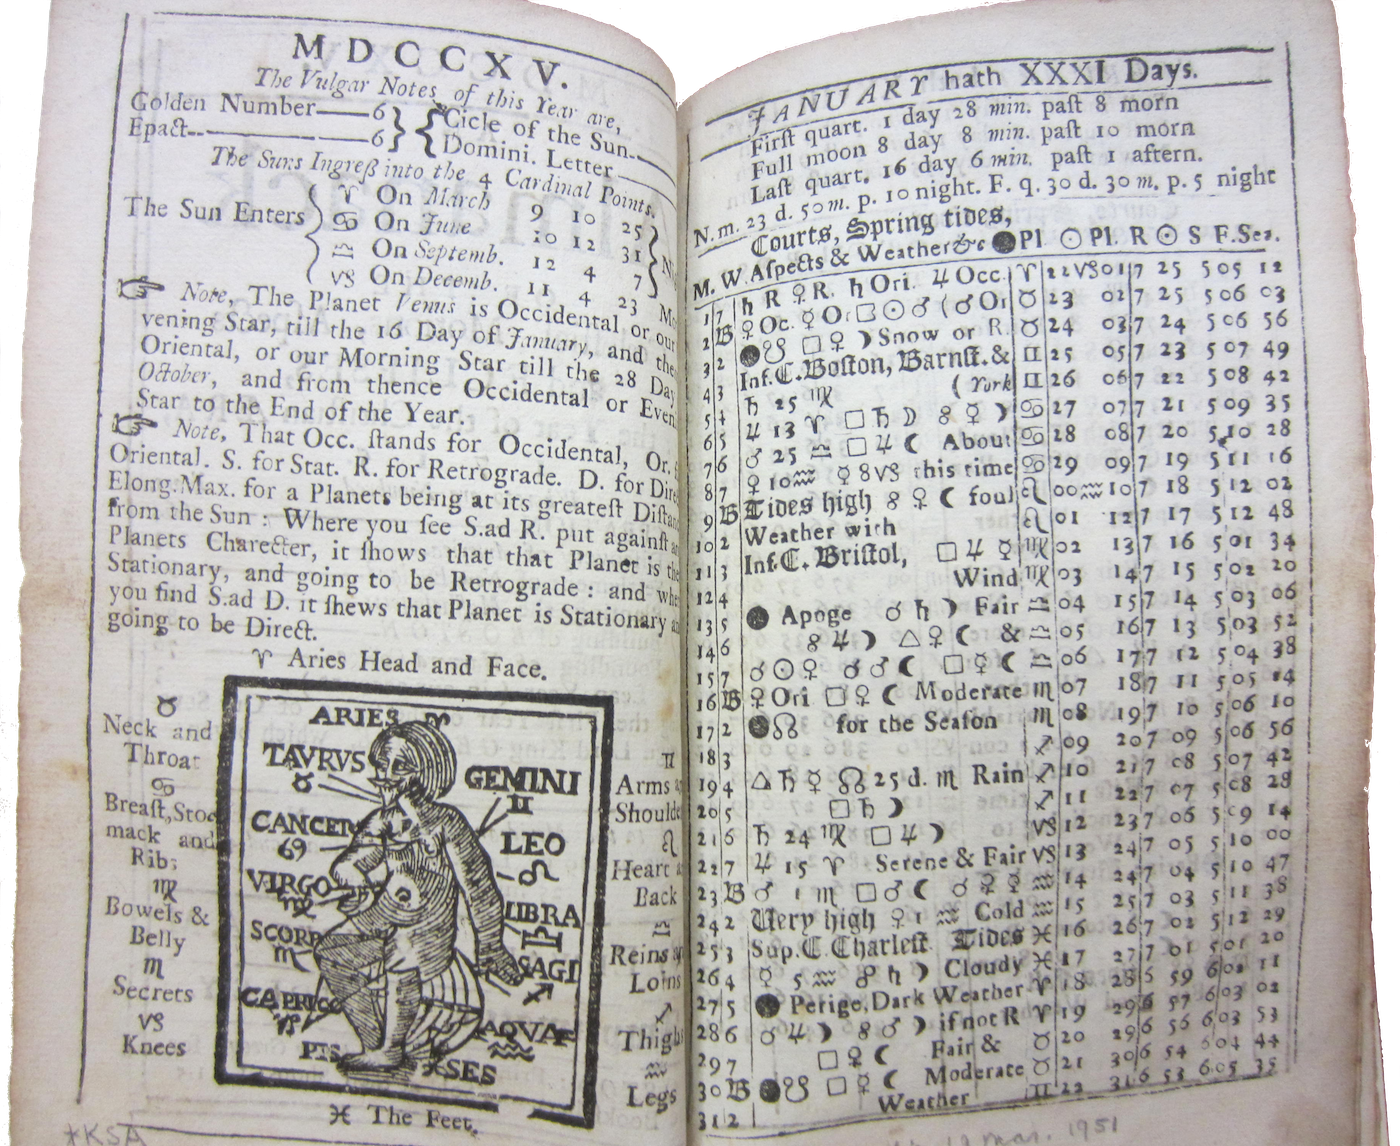 Pages of an almanac from 1715 showing a woodcut of a man, the parts of his body labeled with different astrological signs.